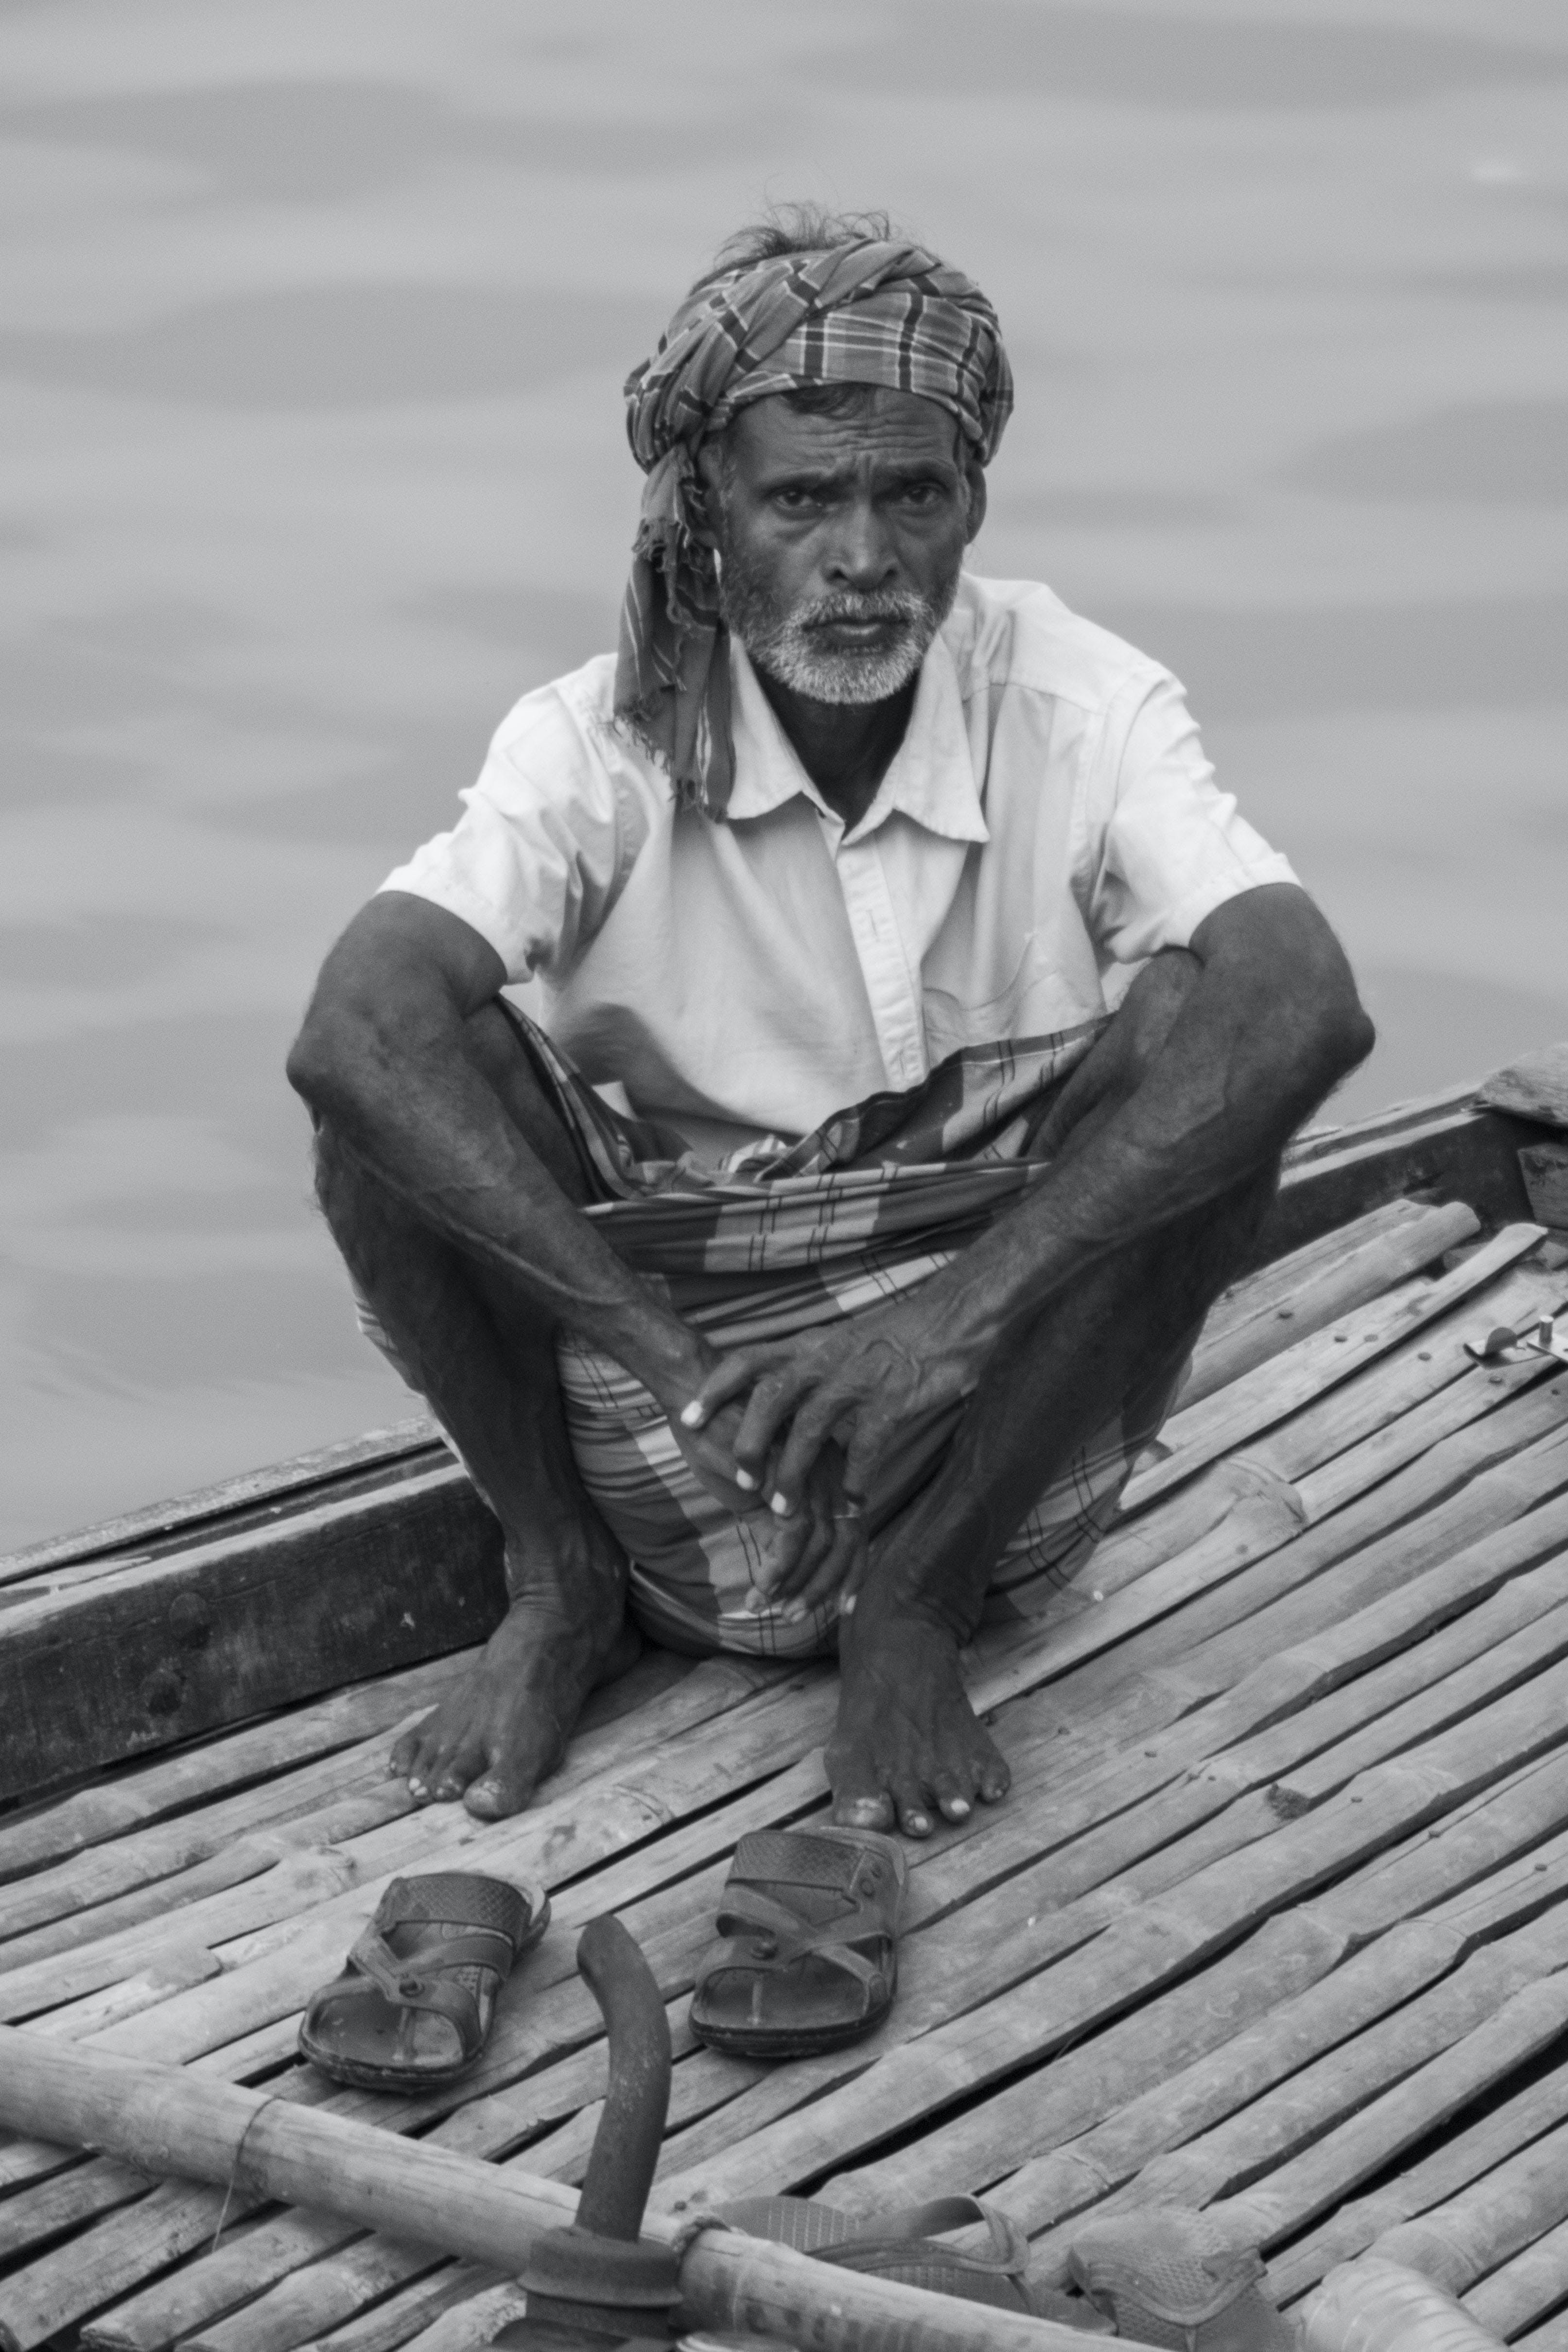 Grayscale Photo Of Man On A Raft